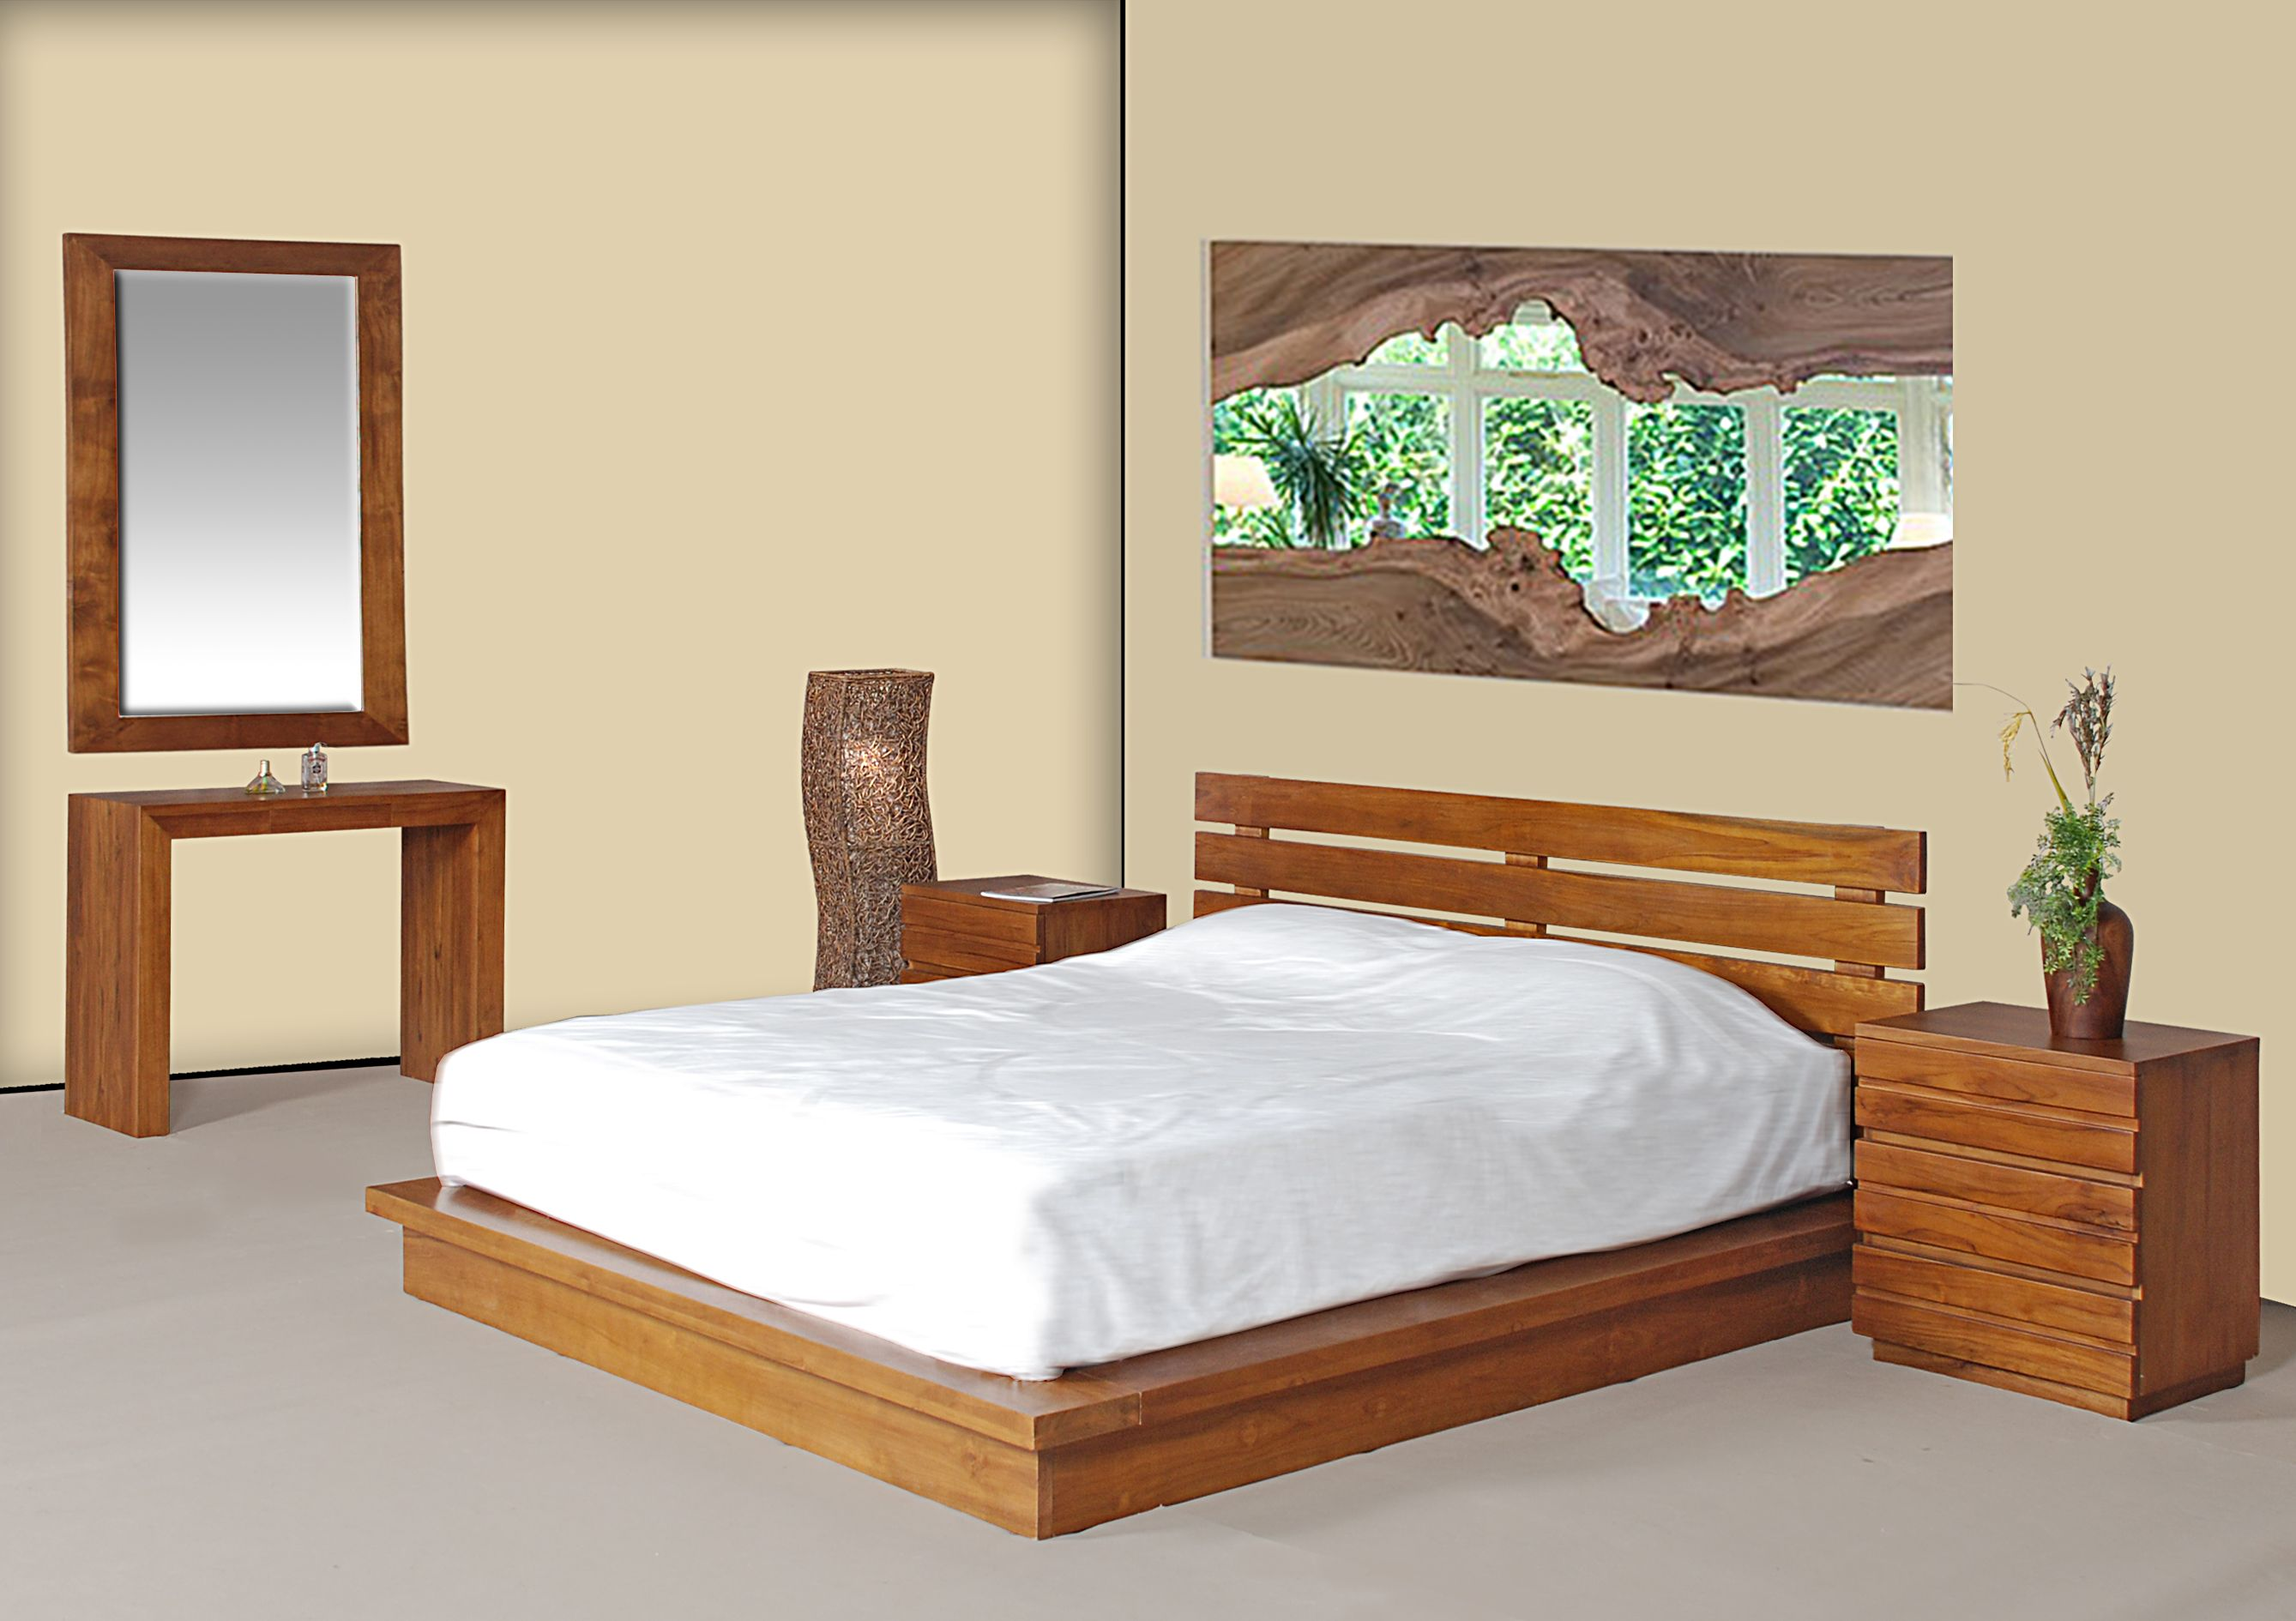 Teak Wood Bedroom Set In Malaysia 03 80820341